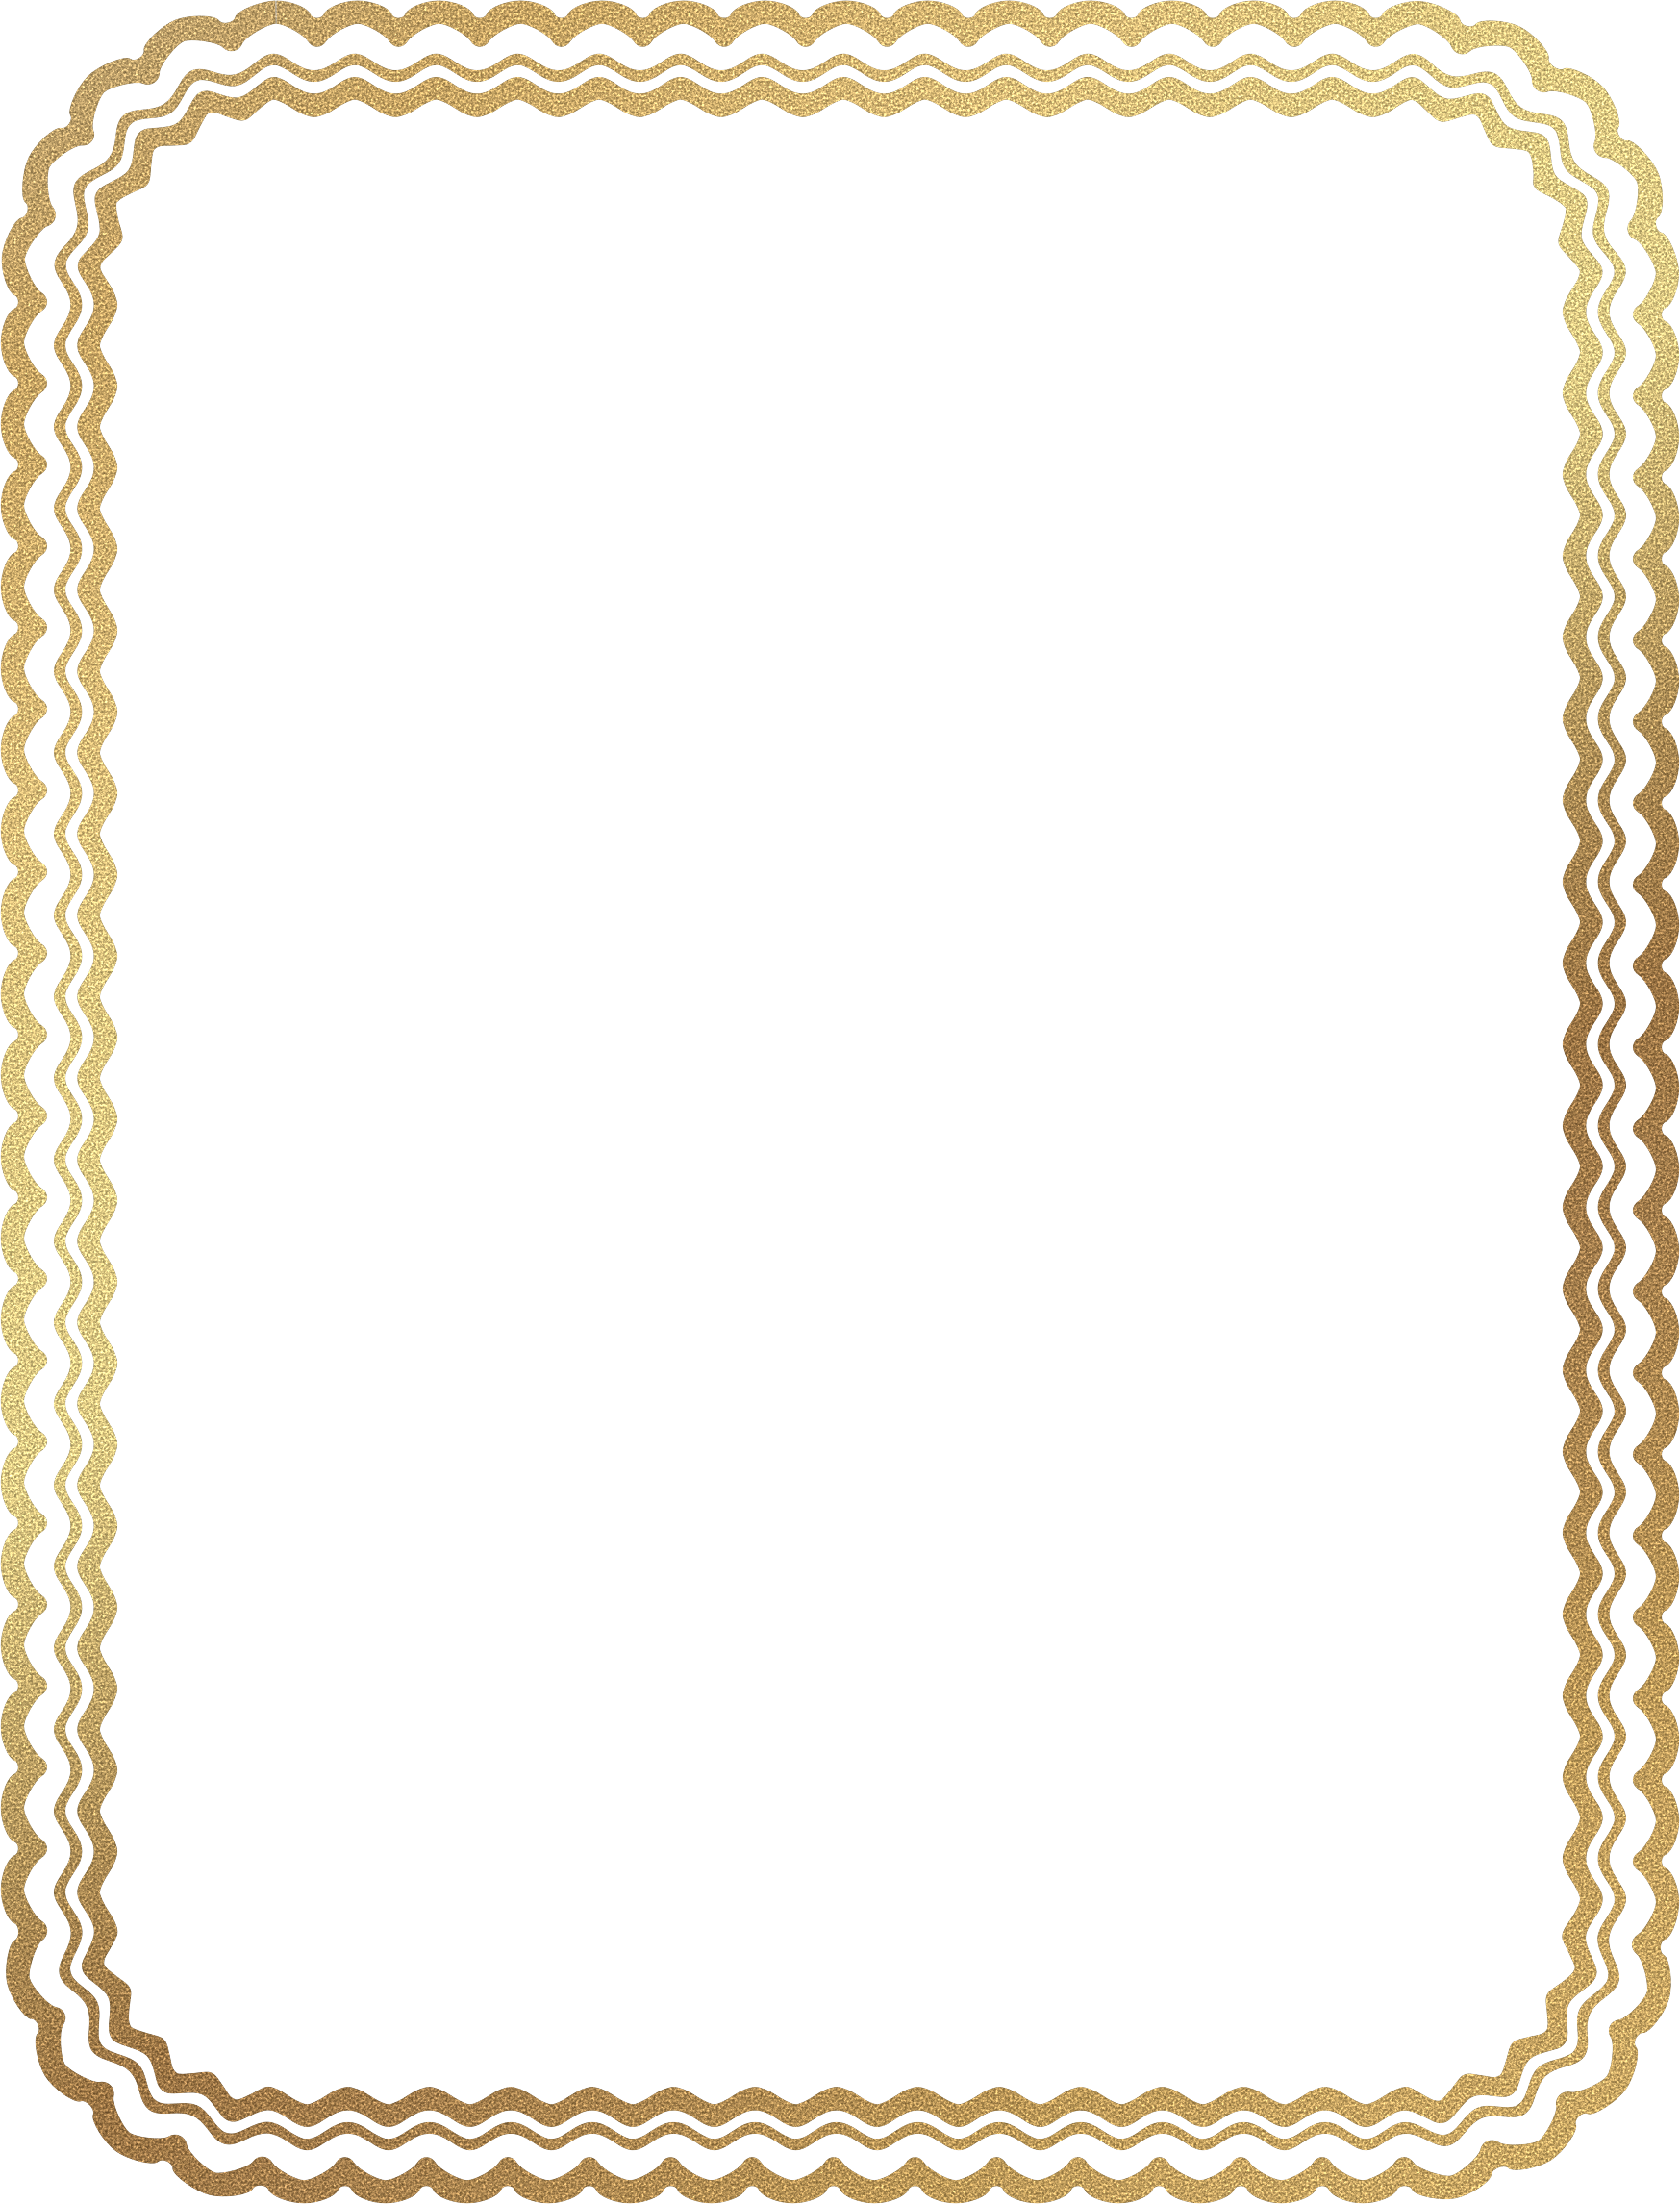 Gold png border. Sand icons free and